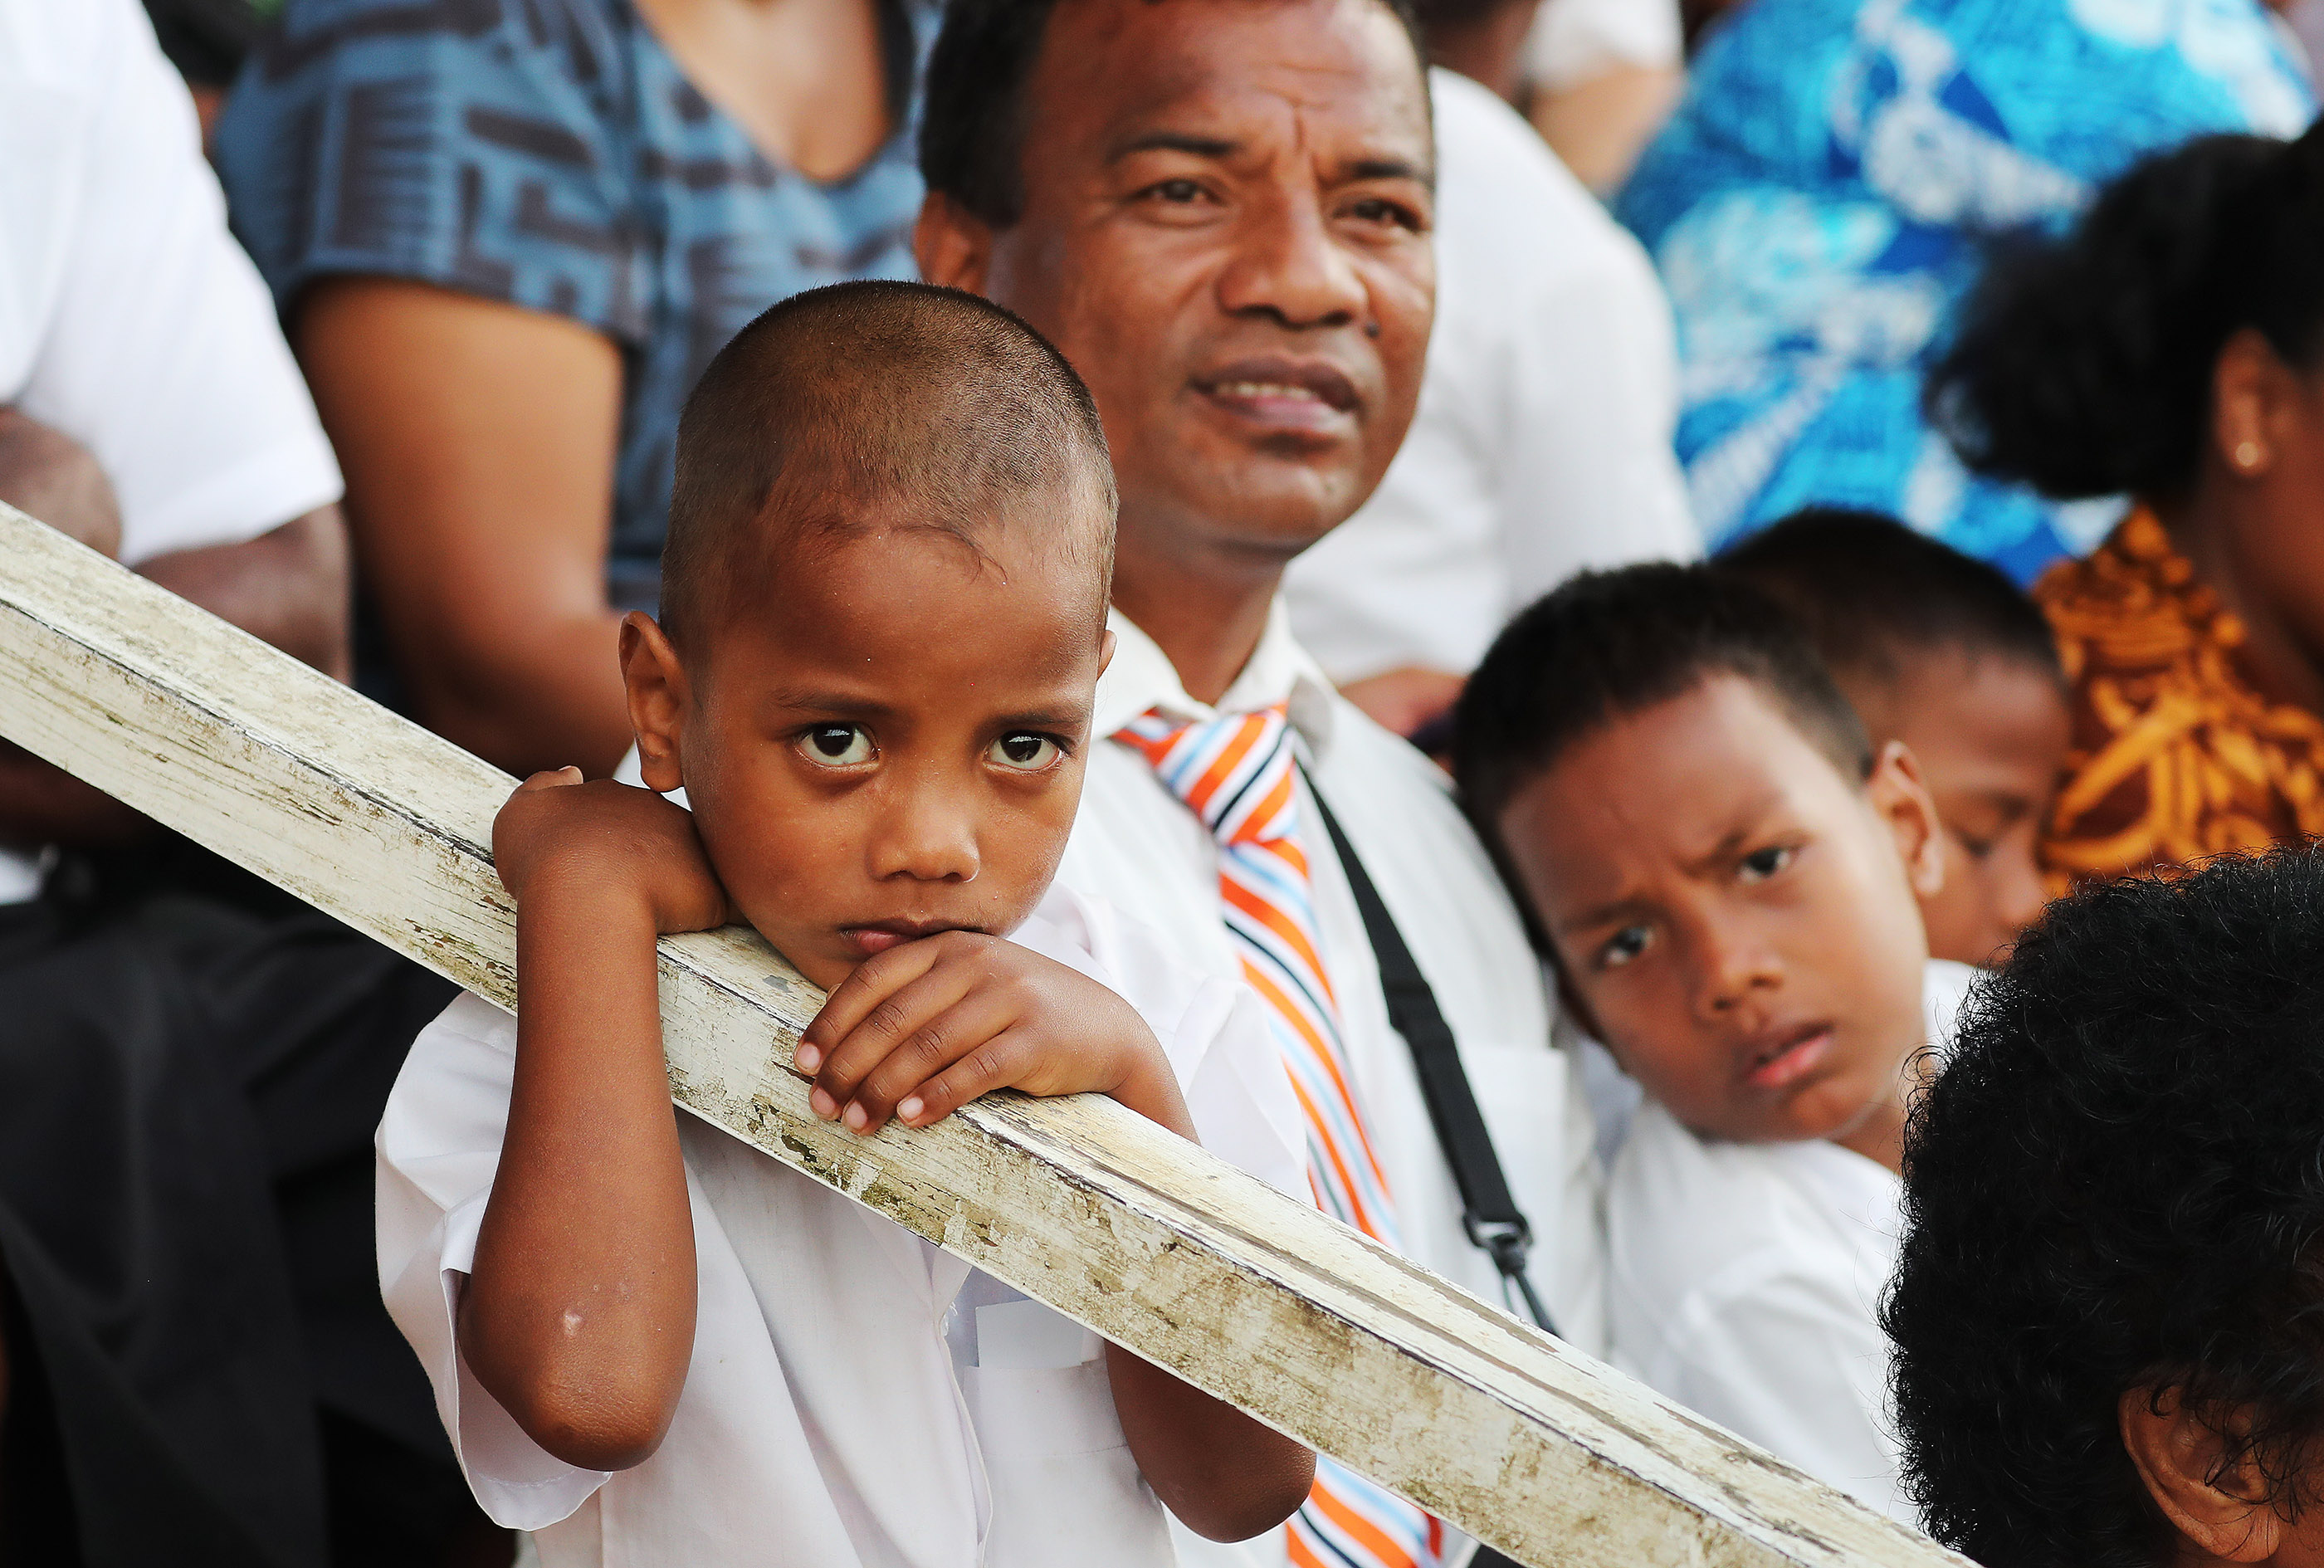 A family watches President Russell M. Nelson of The Church of Jesus Christ of Latter-day Saints speak during a devotional at Ratu Cakobau Park stadium in Nausori, Fiji, on May 22, 2019.